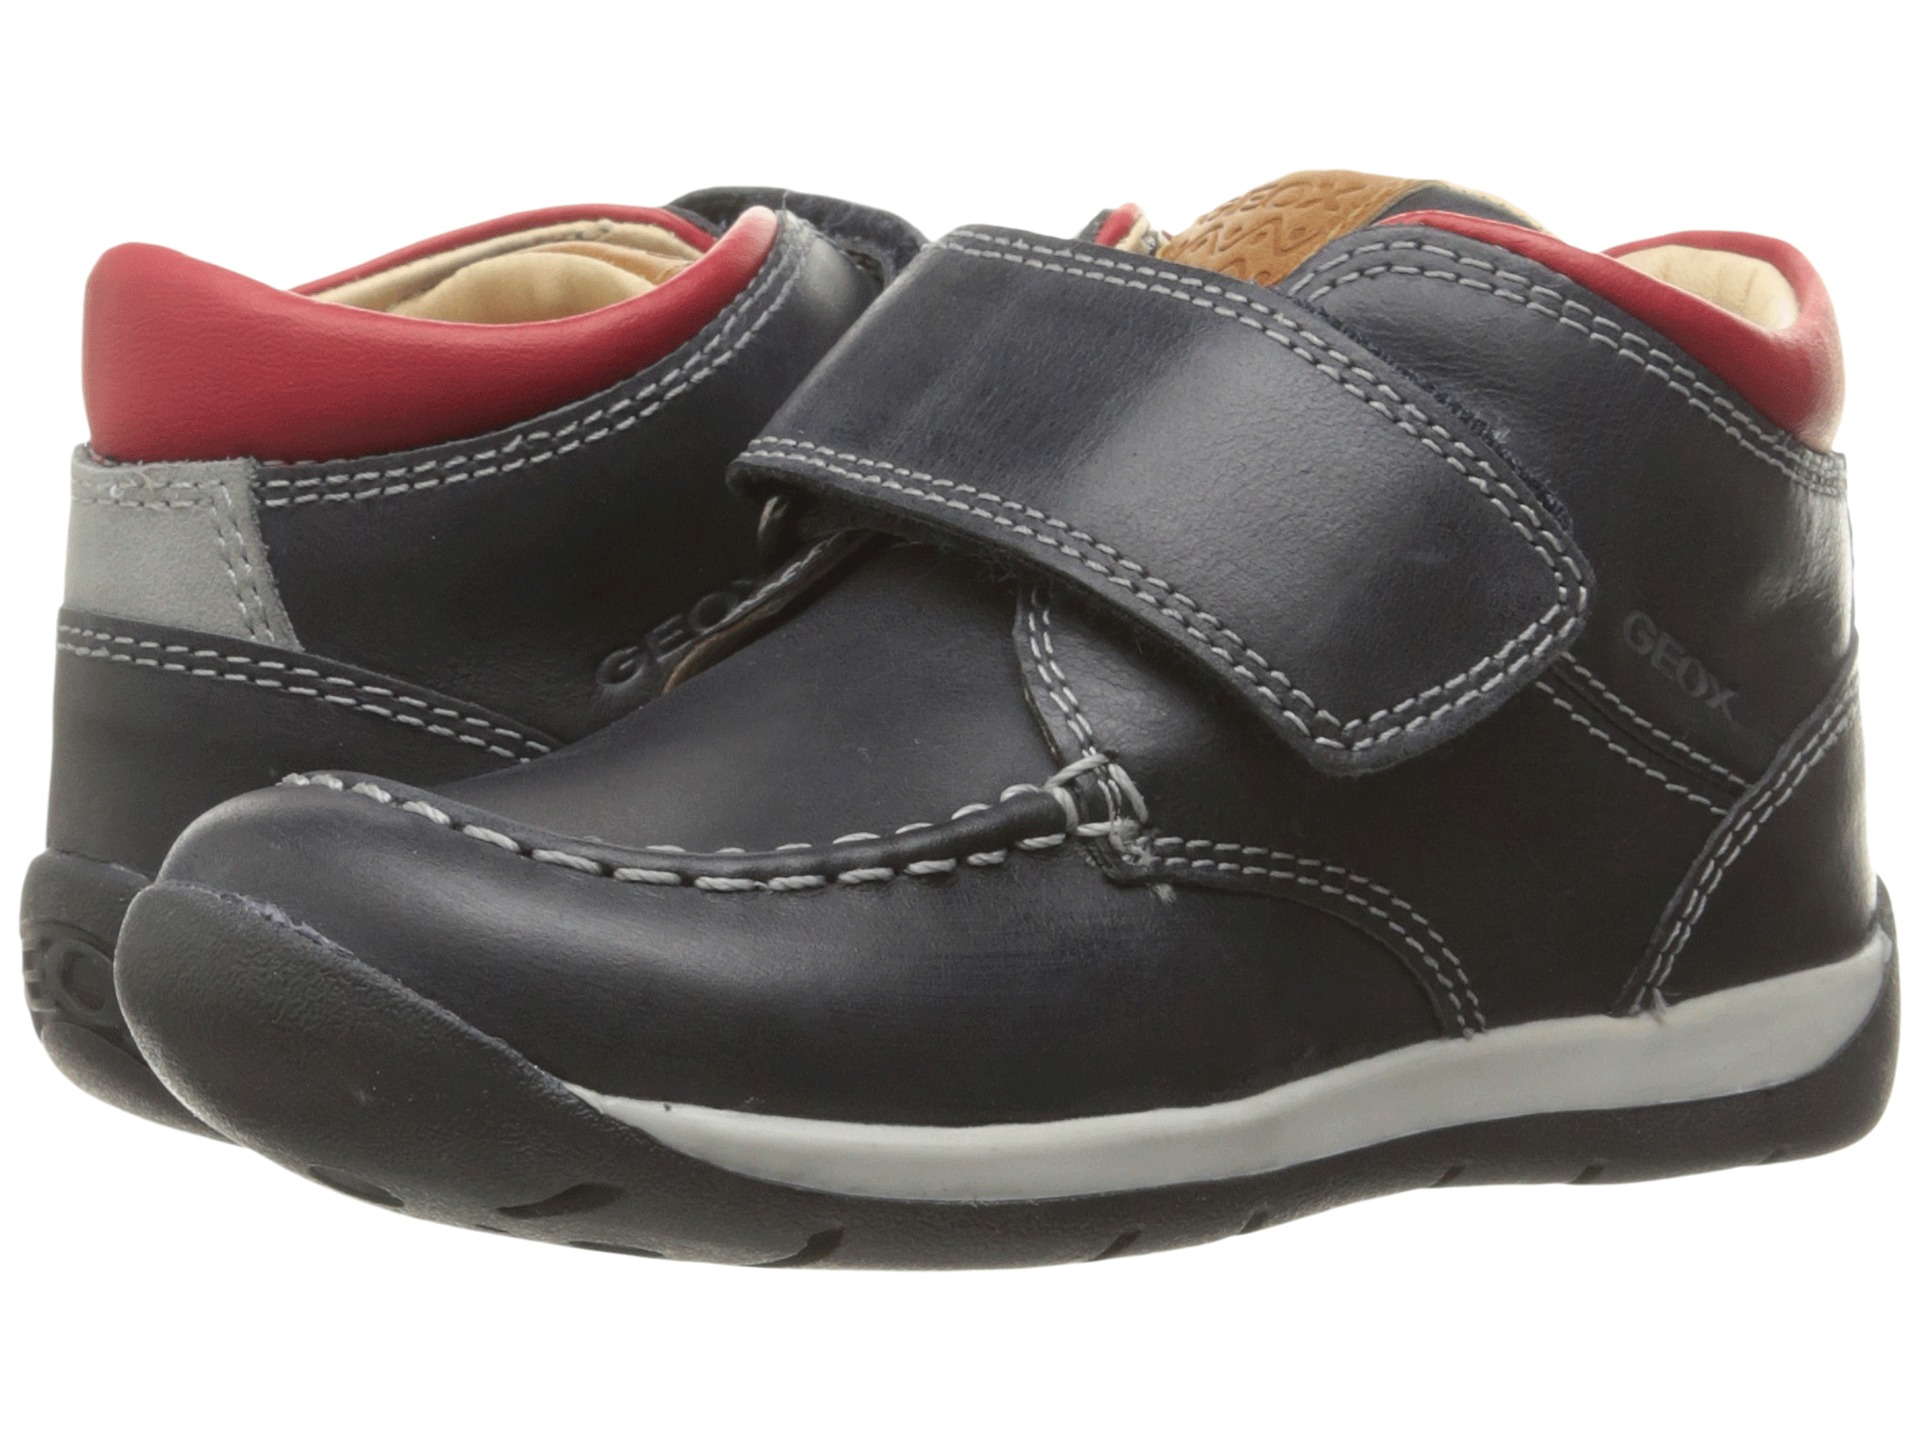 Geox Kids Baby Each Boy 10 Infant Toddler at Zappos